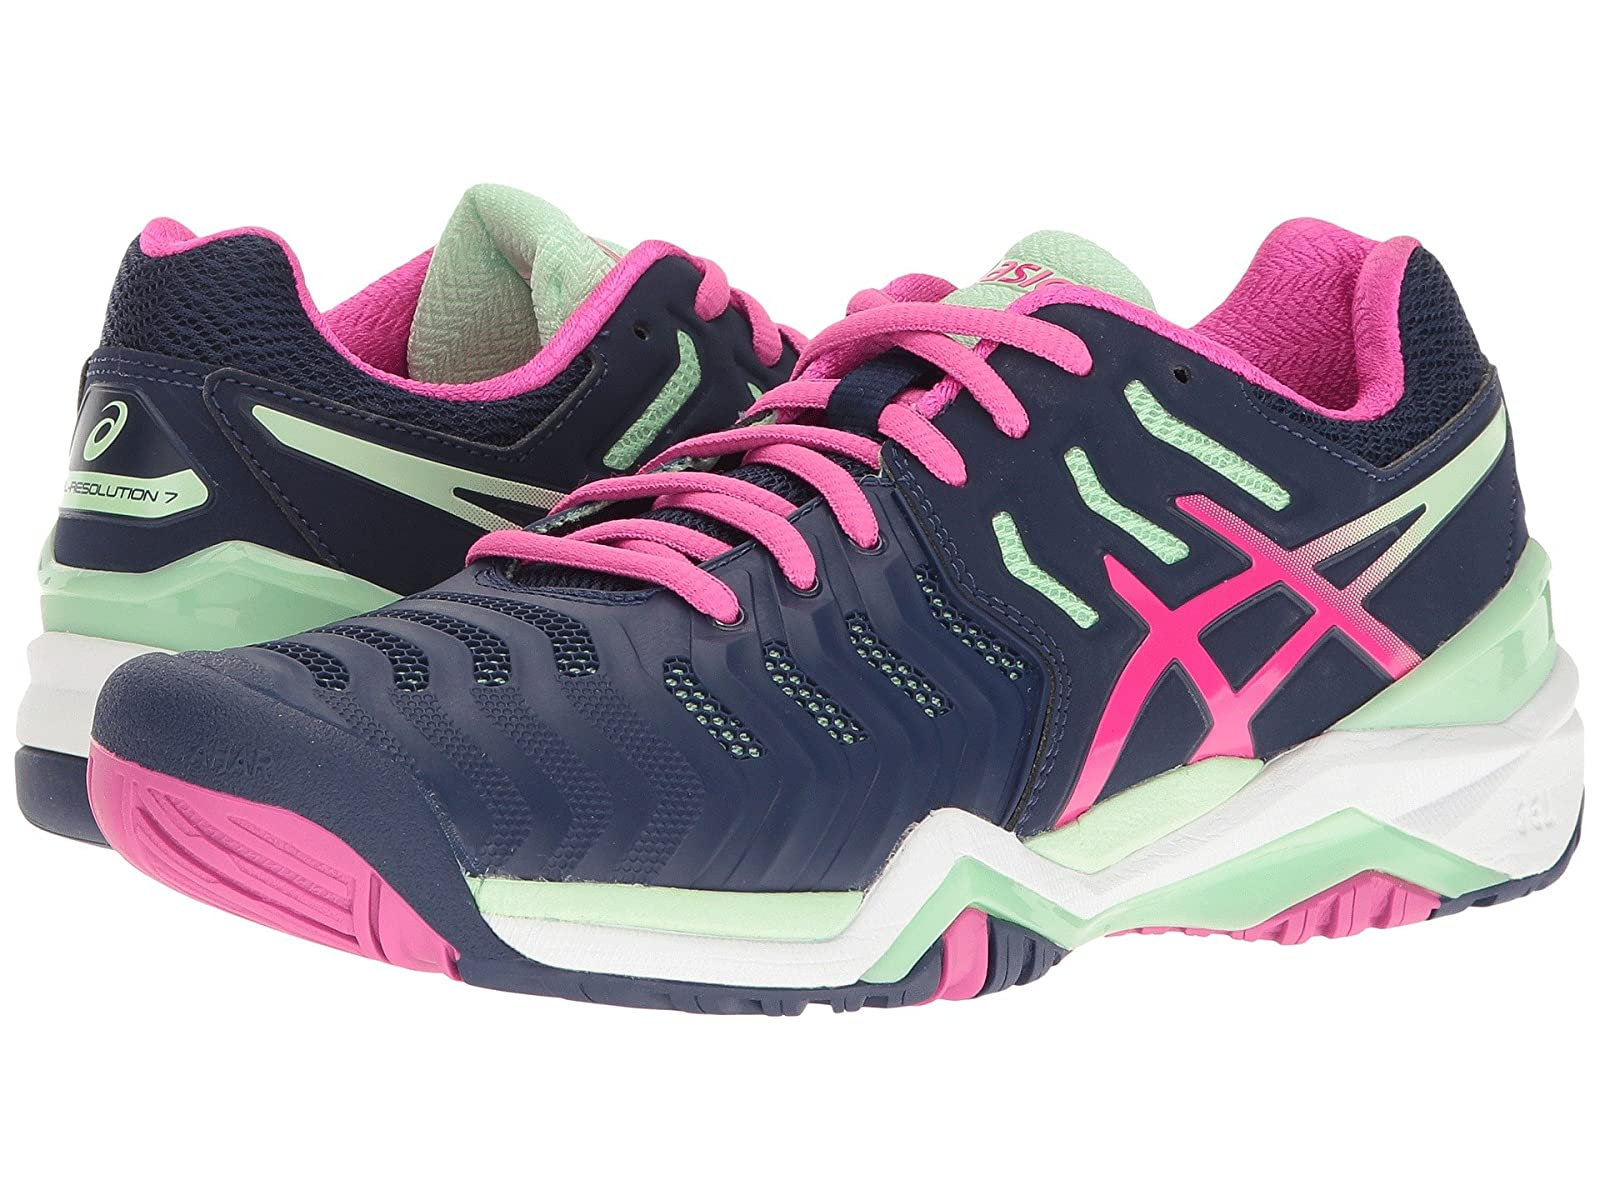 ASICS Gel-Resolution 7Cheap and distinctive eye-catching shoes